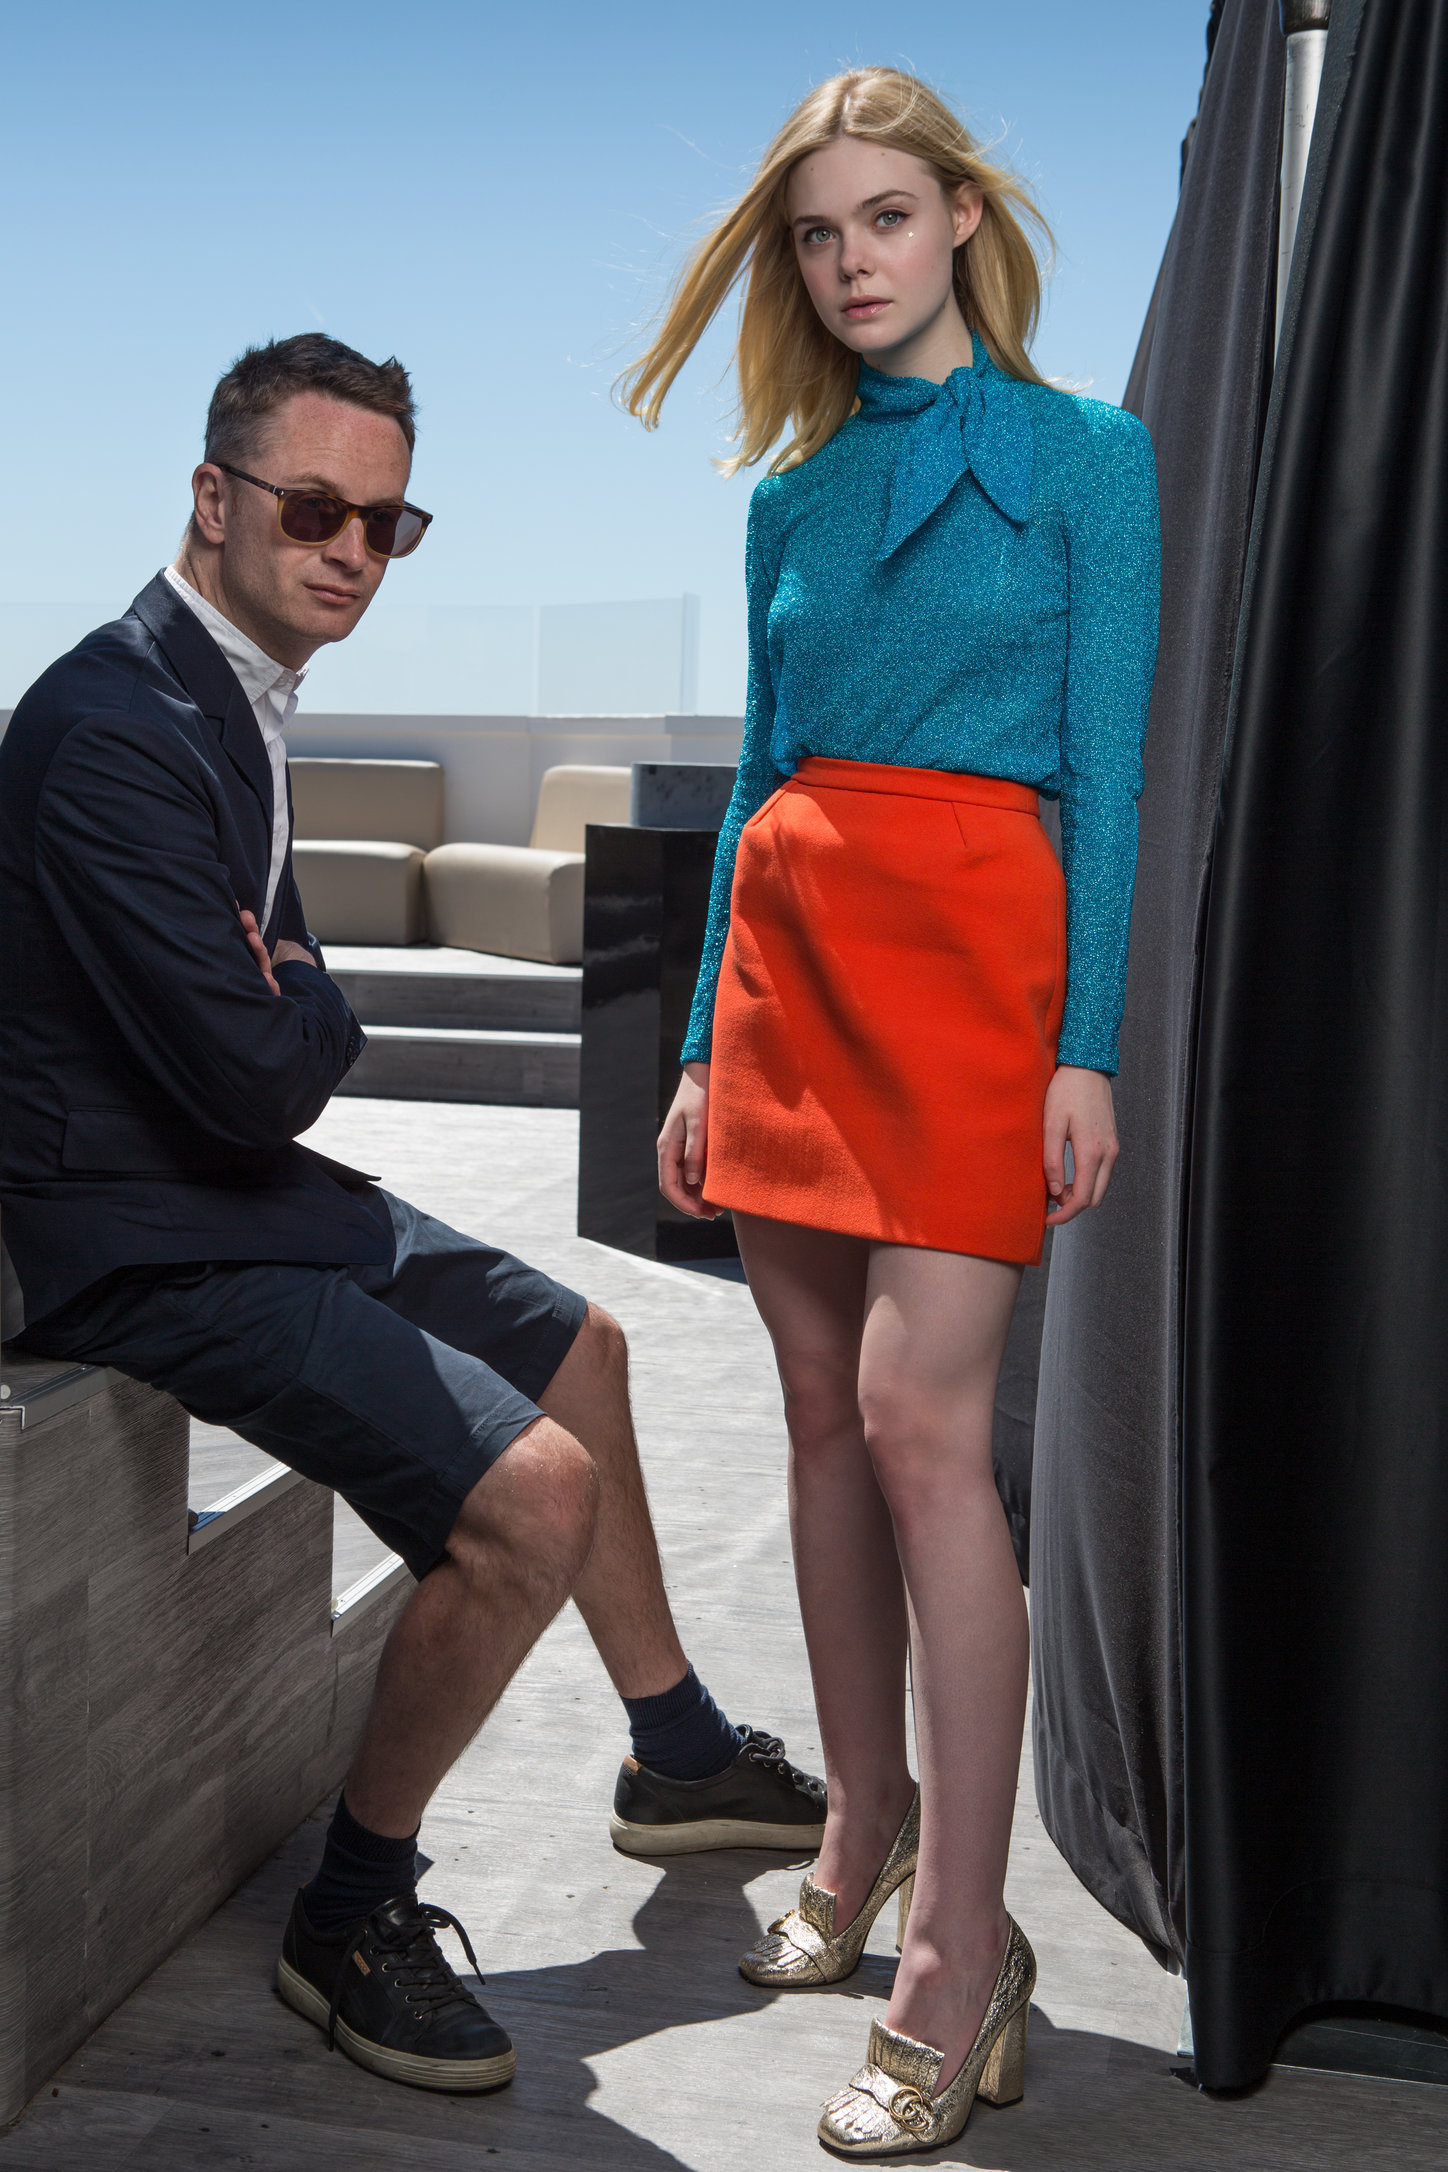 nicolas winding refn, director and elle fanning, actress